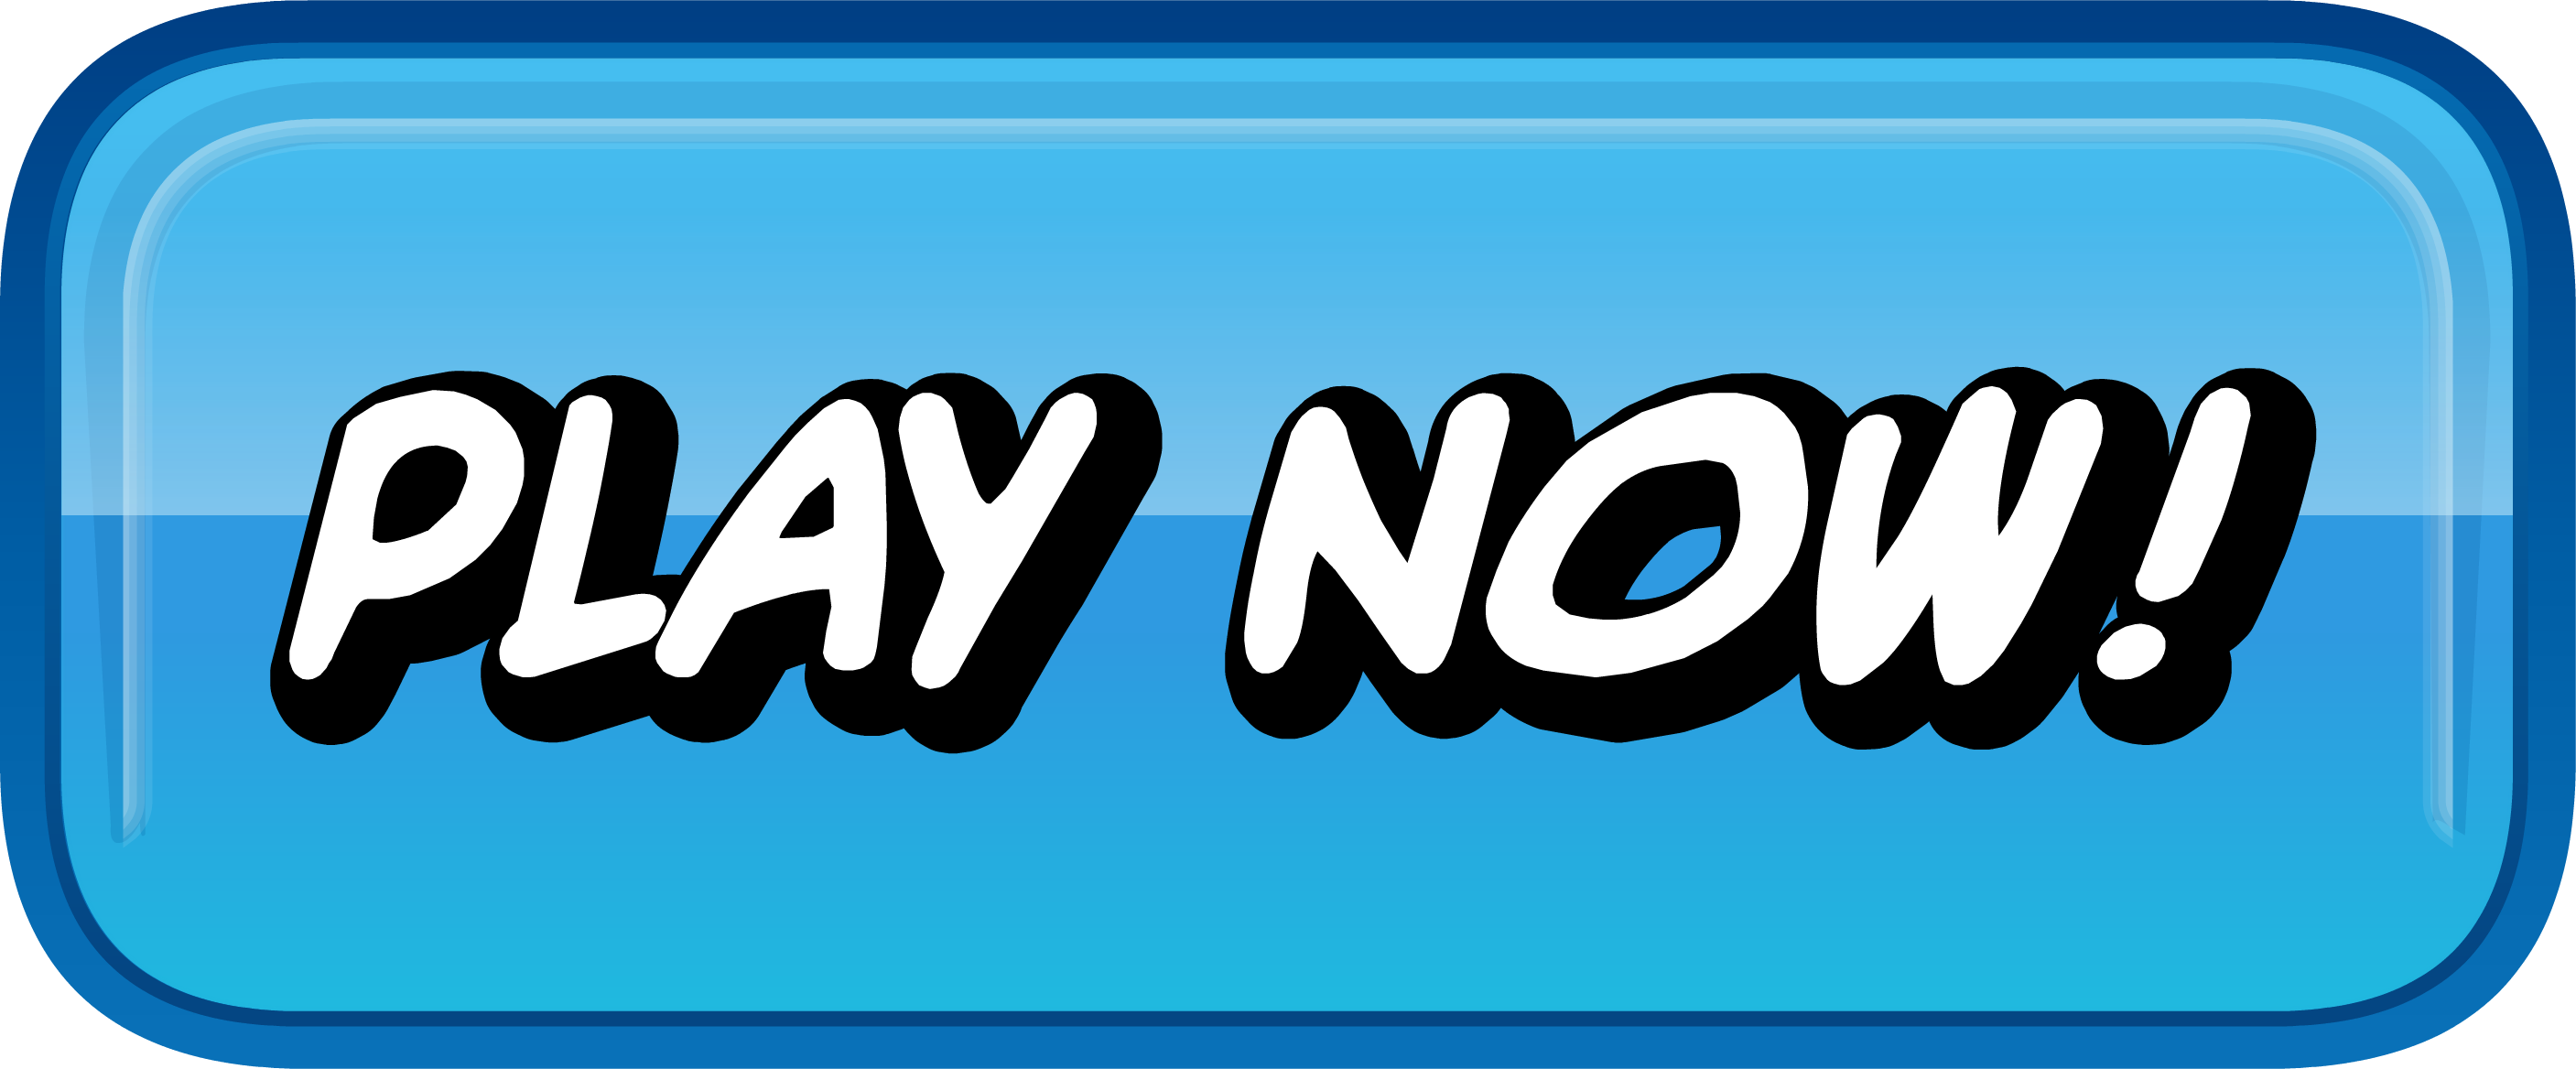 Plenty on Twenty Online Slot | PLAY NOW | StarGames Casino